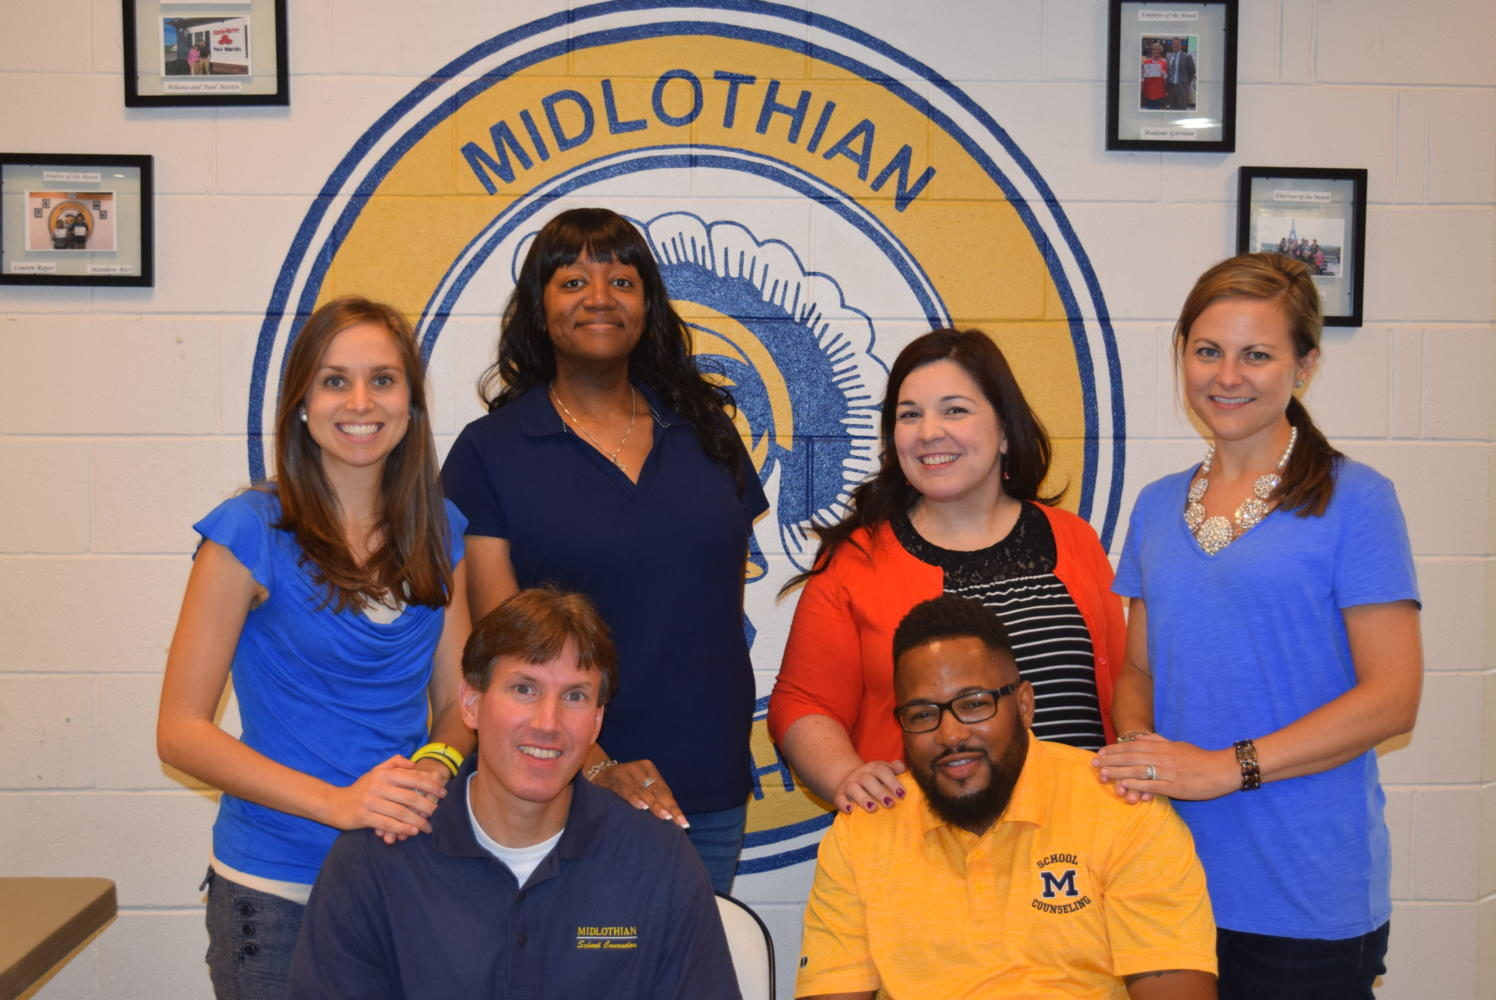 Midlothian+High+School+Counseling+Department++%28back+row%2C+left+to+right%29%3A+Mrs.+Stacy+Shore%2C+Mrs.+Loretta+Speller%2C+Ms.+Laura+Brady%2C+and+Mrs.++++Lawson.+%28front+row%2C+left+to+right%29%3A+Mr.+Kevin+Birmingham+and+Mr.+Darnell+Erby.